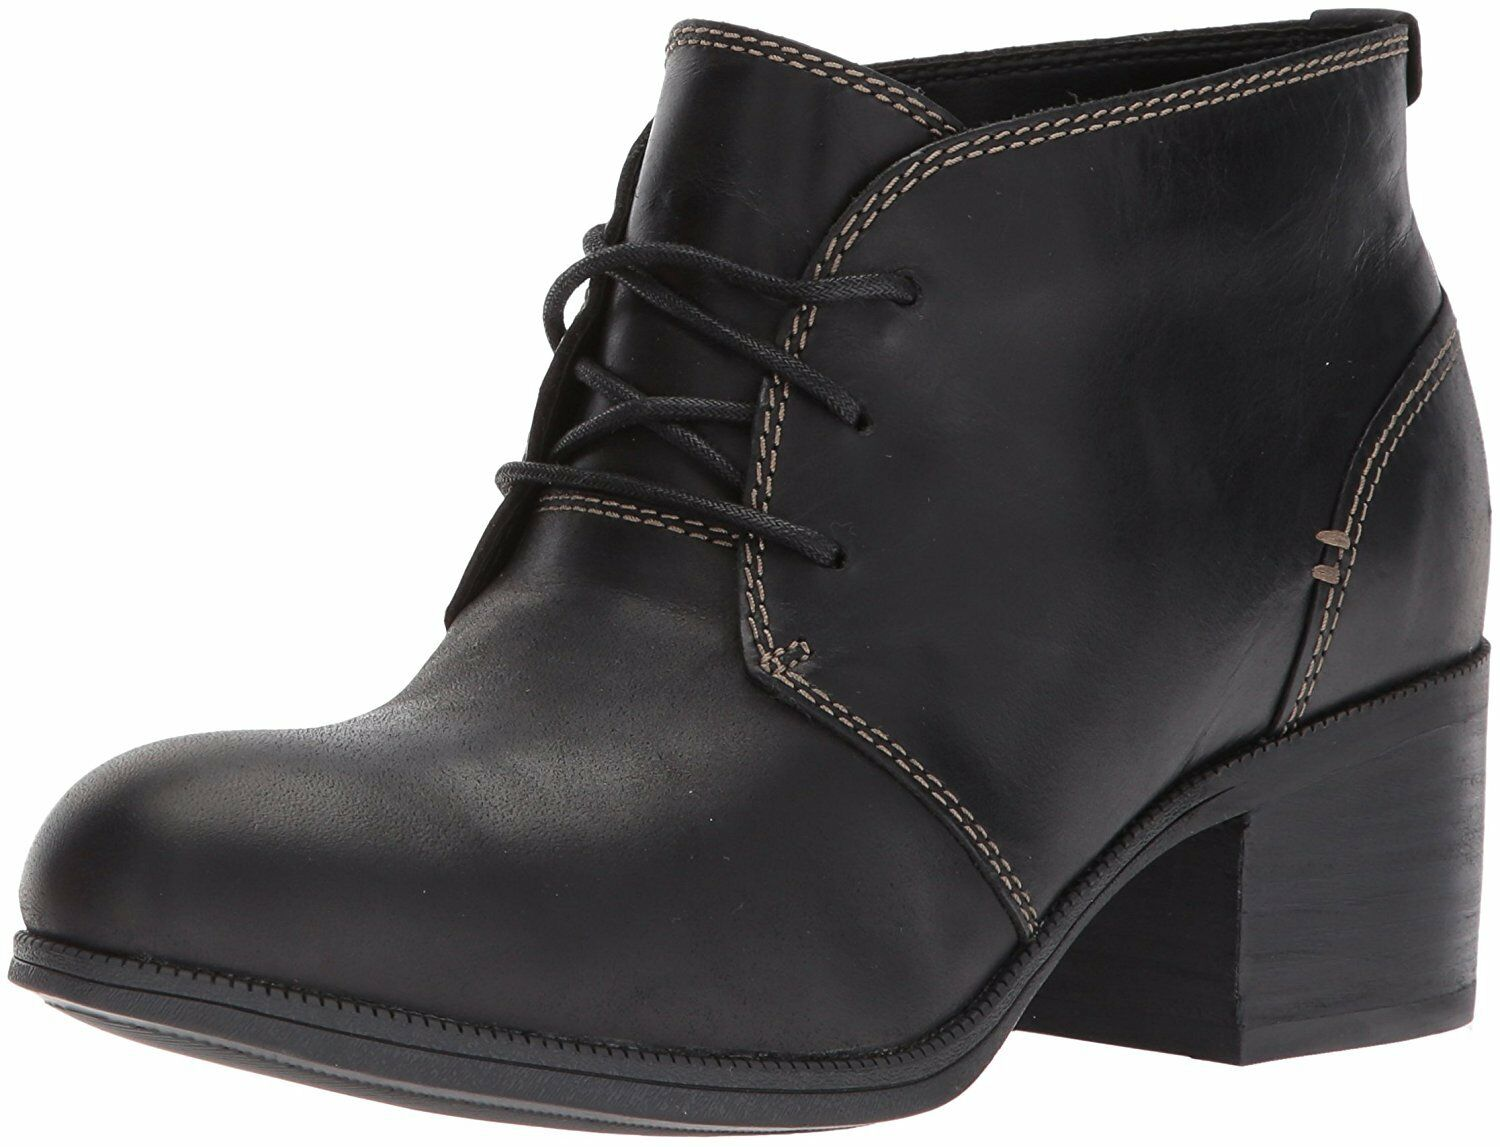 Clarks Womens Maypearl Flora Ankle Bootie- Pick SZ color.